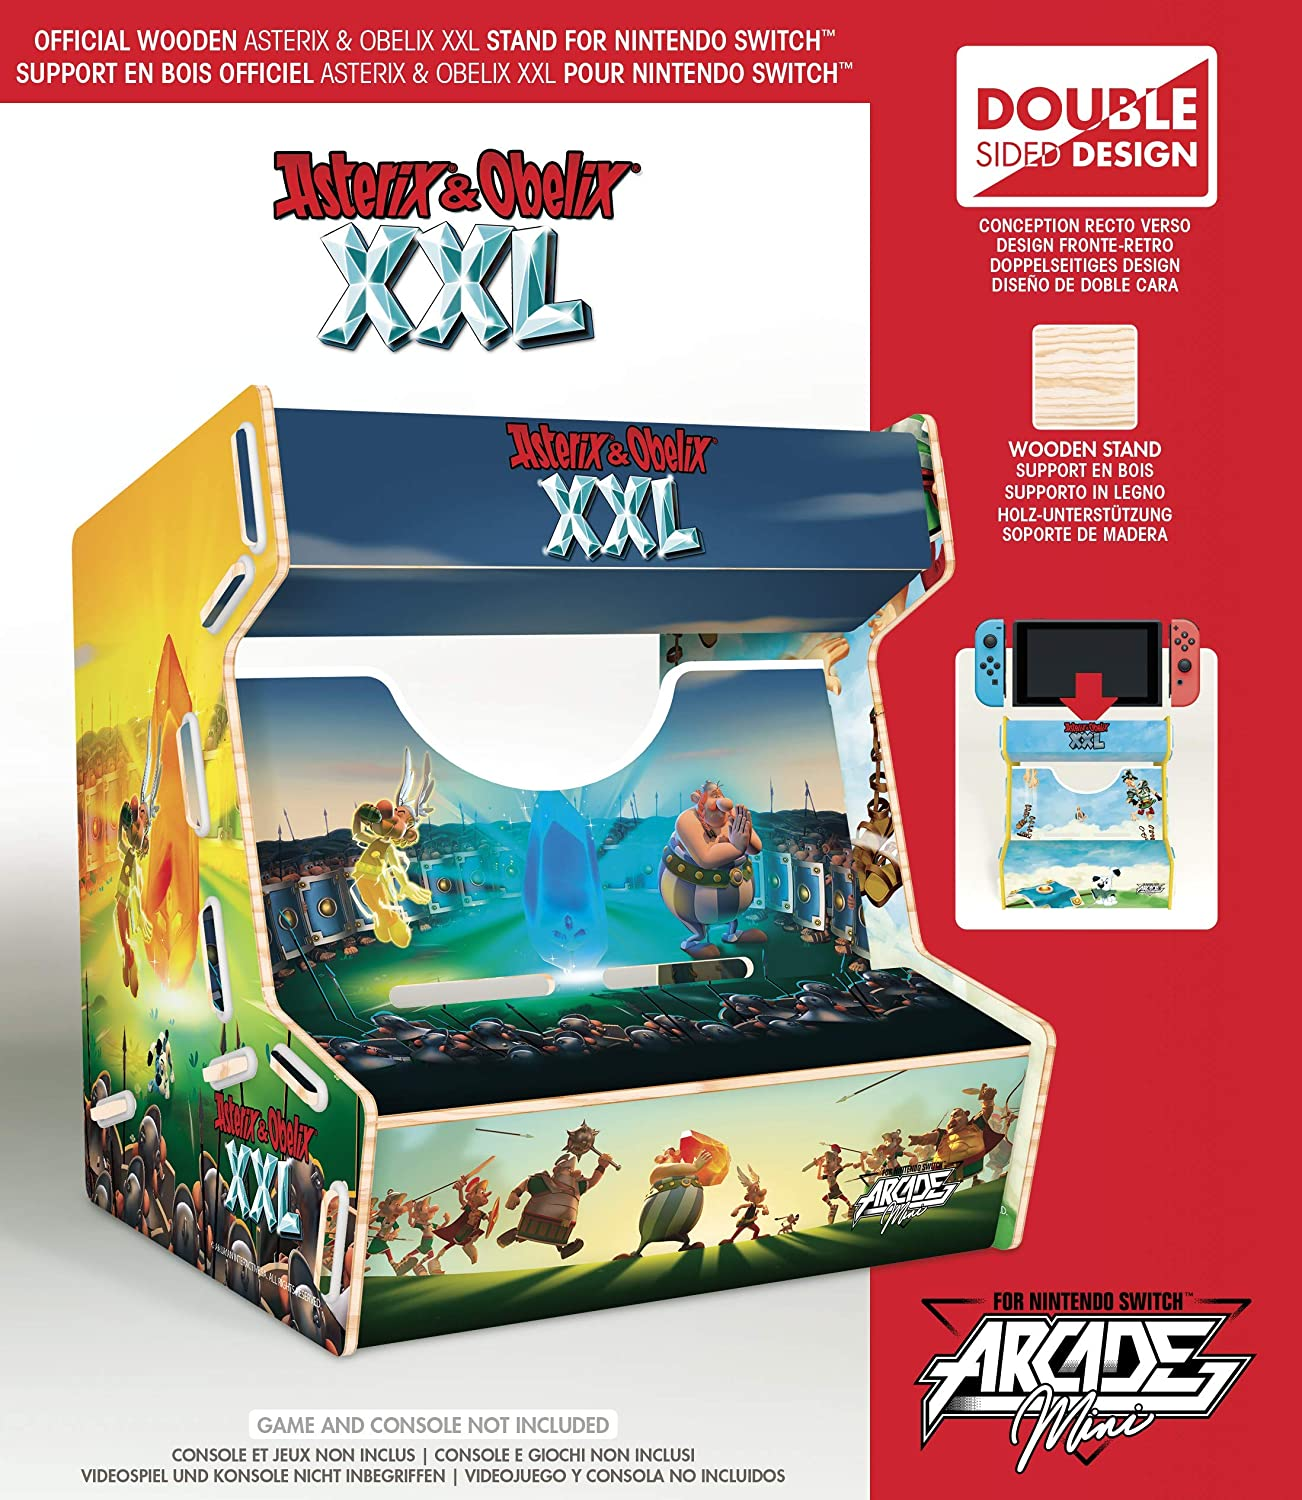 Meridiem Games - Asterix XXL Arcade Mini (Nintendo Switch): Amazon.es: Videojuegos